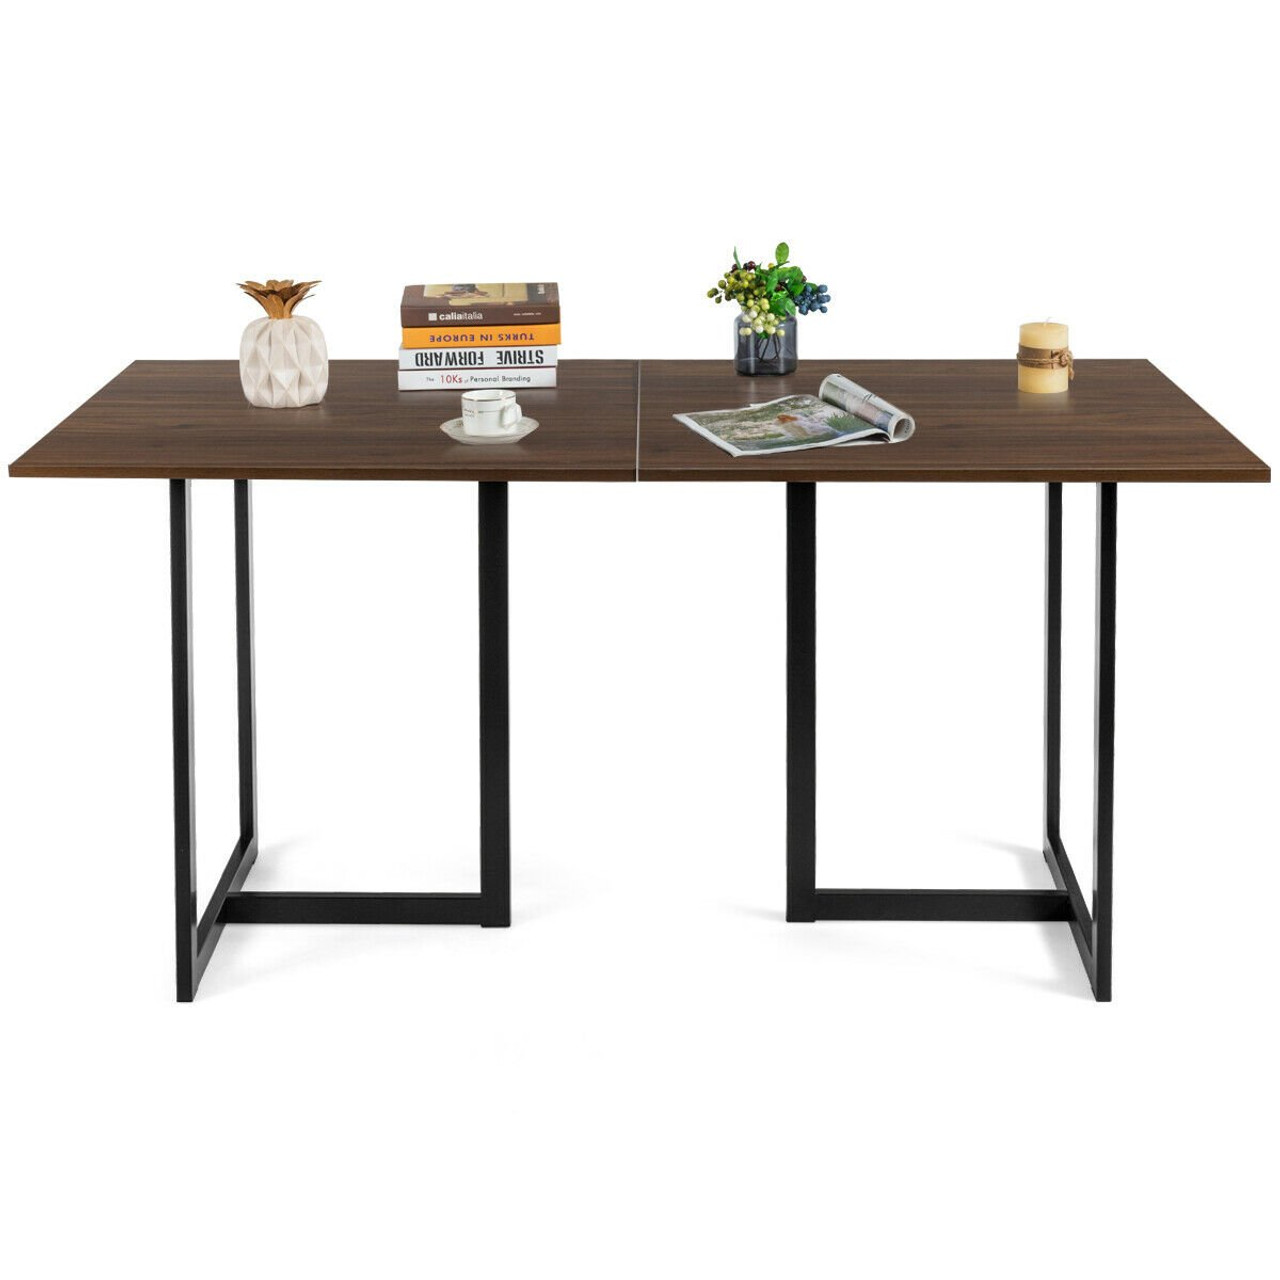 6 Person Industrial Dining Table Rectangular Kitchen Table With Metal Frame Dark Brown Desk Hw61973cf 2